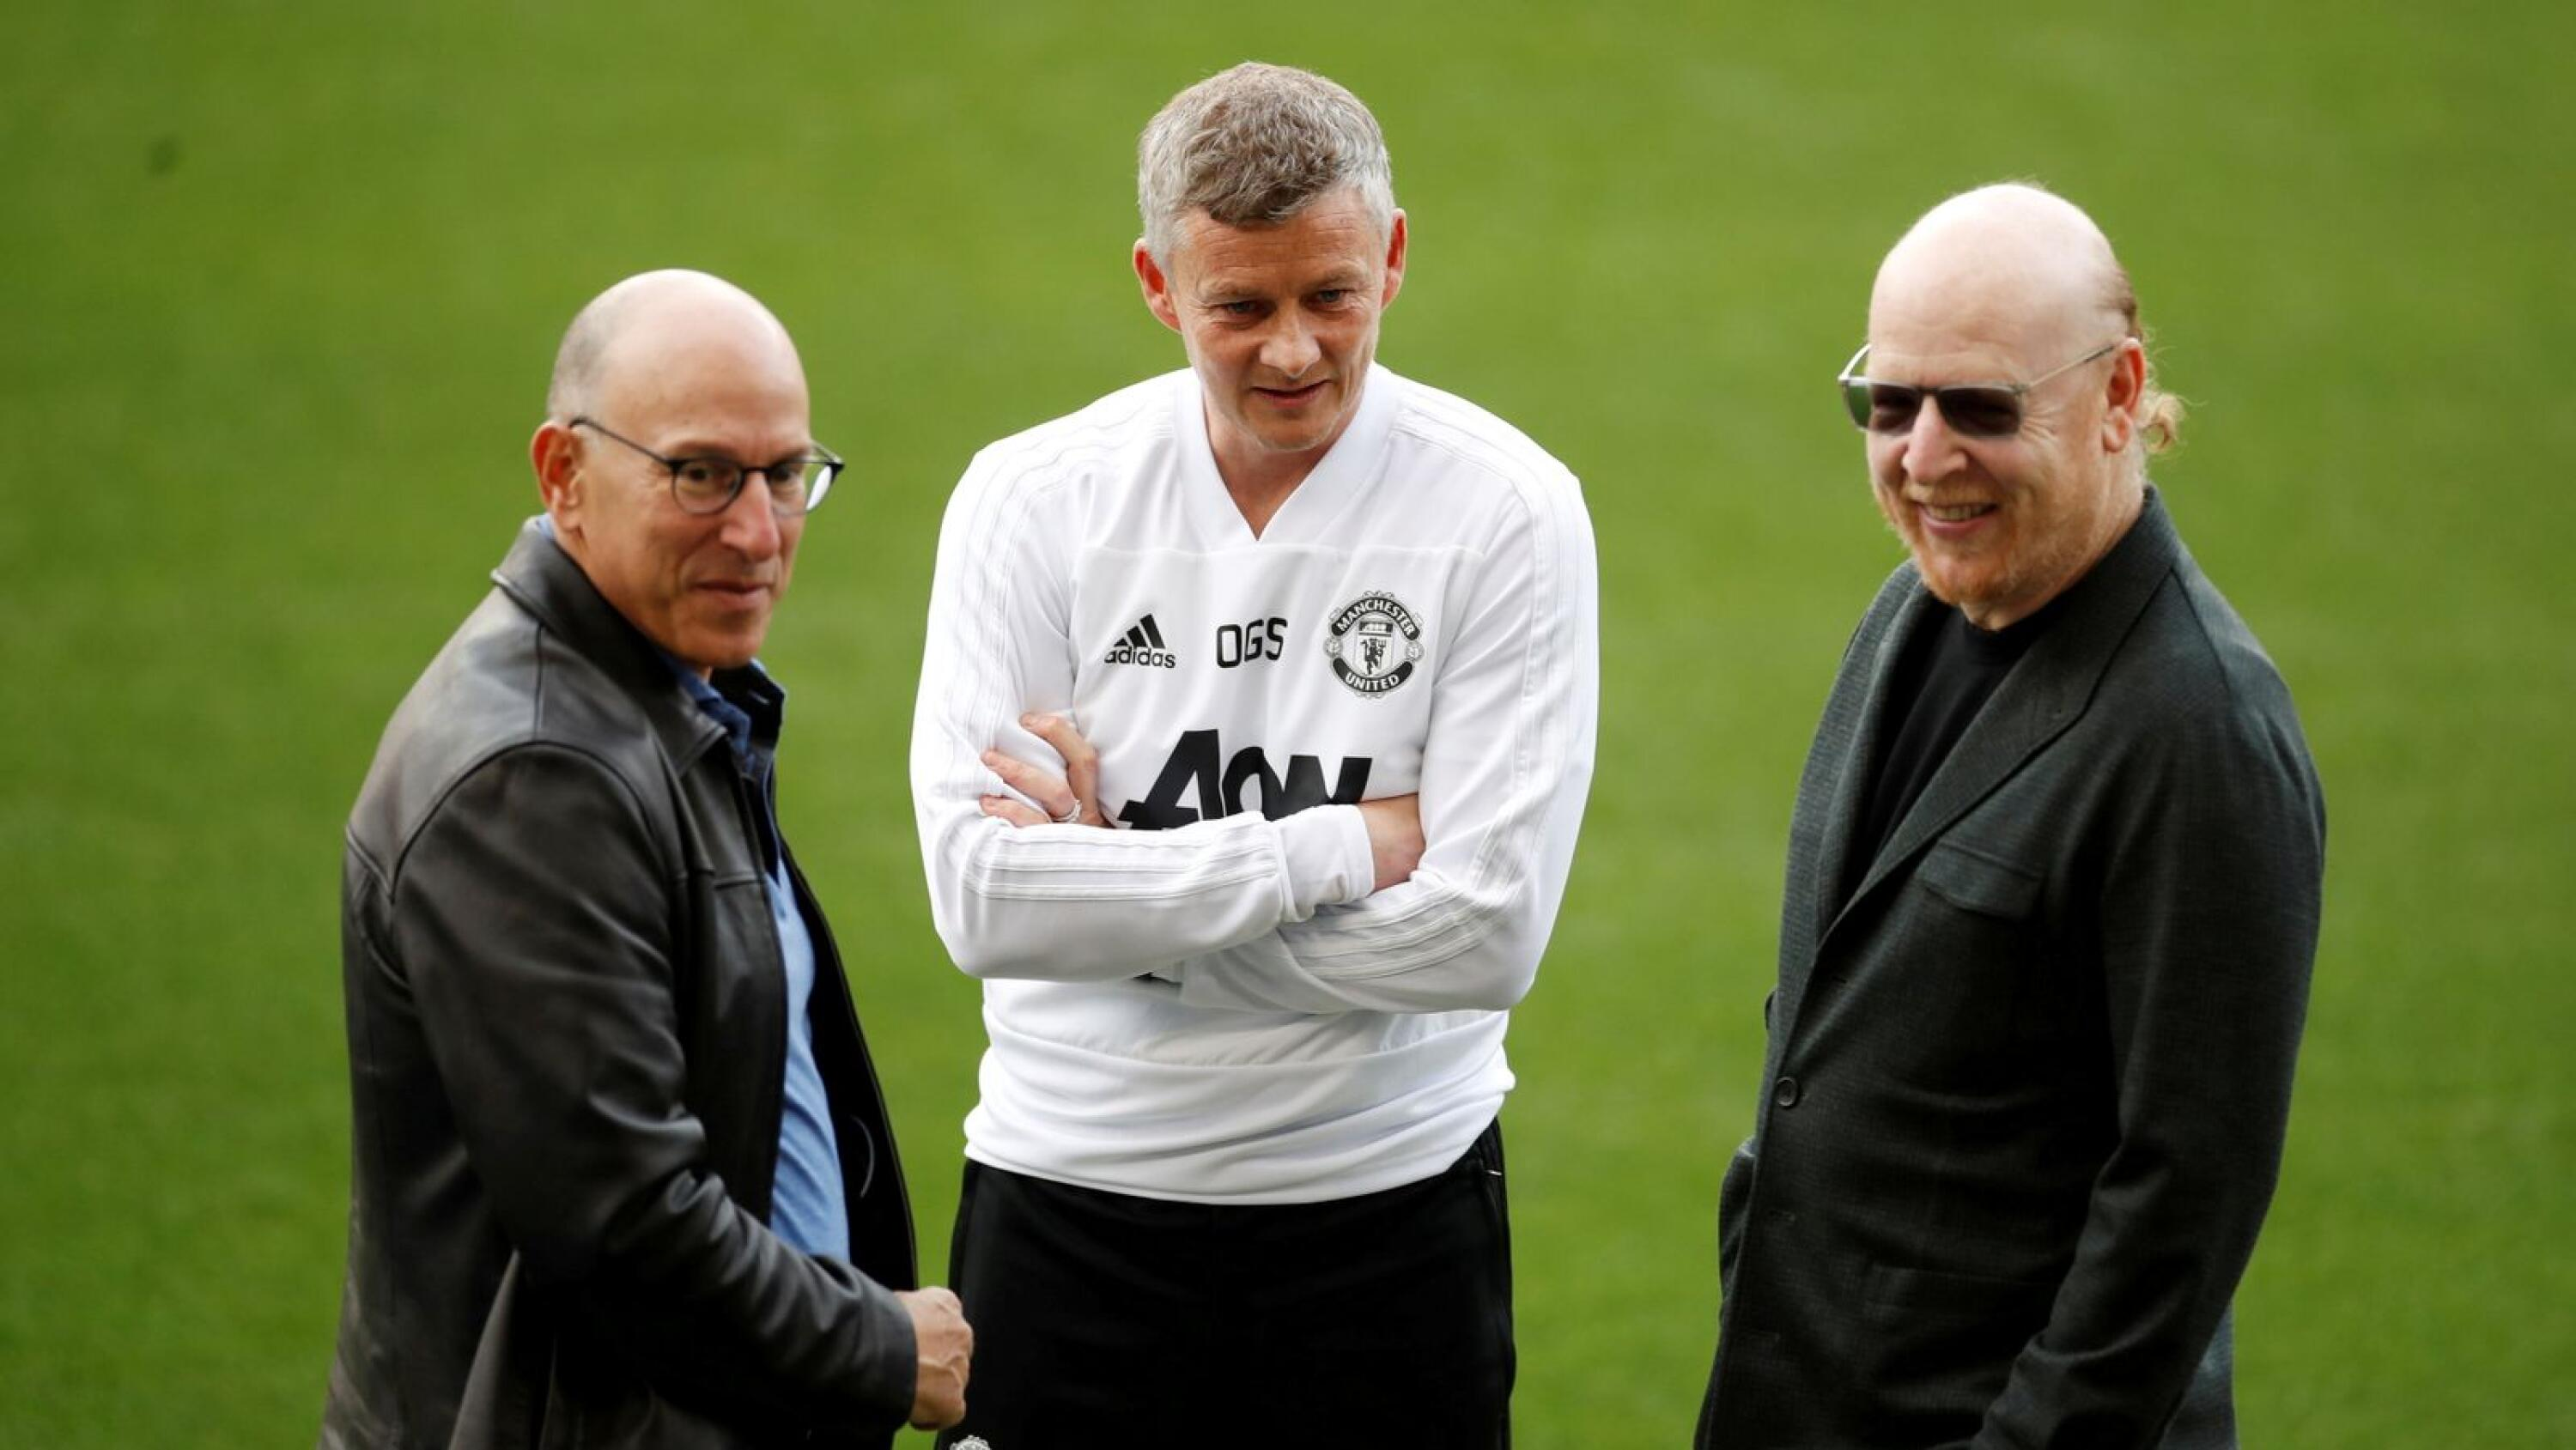 Manchester United manager Ole Gunnar Solskjaer with co owners Joel and Avram Glazer